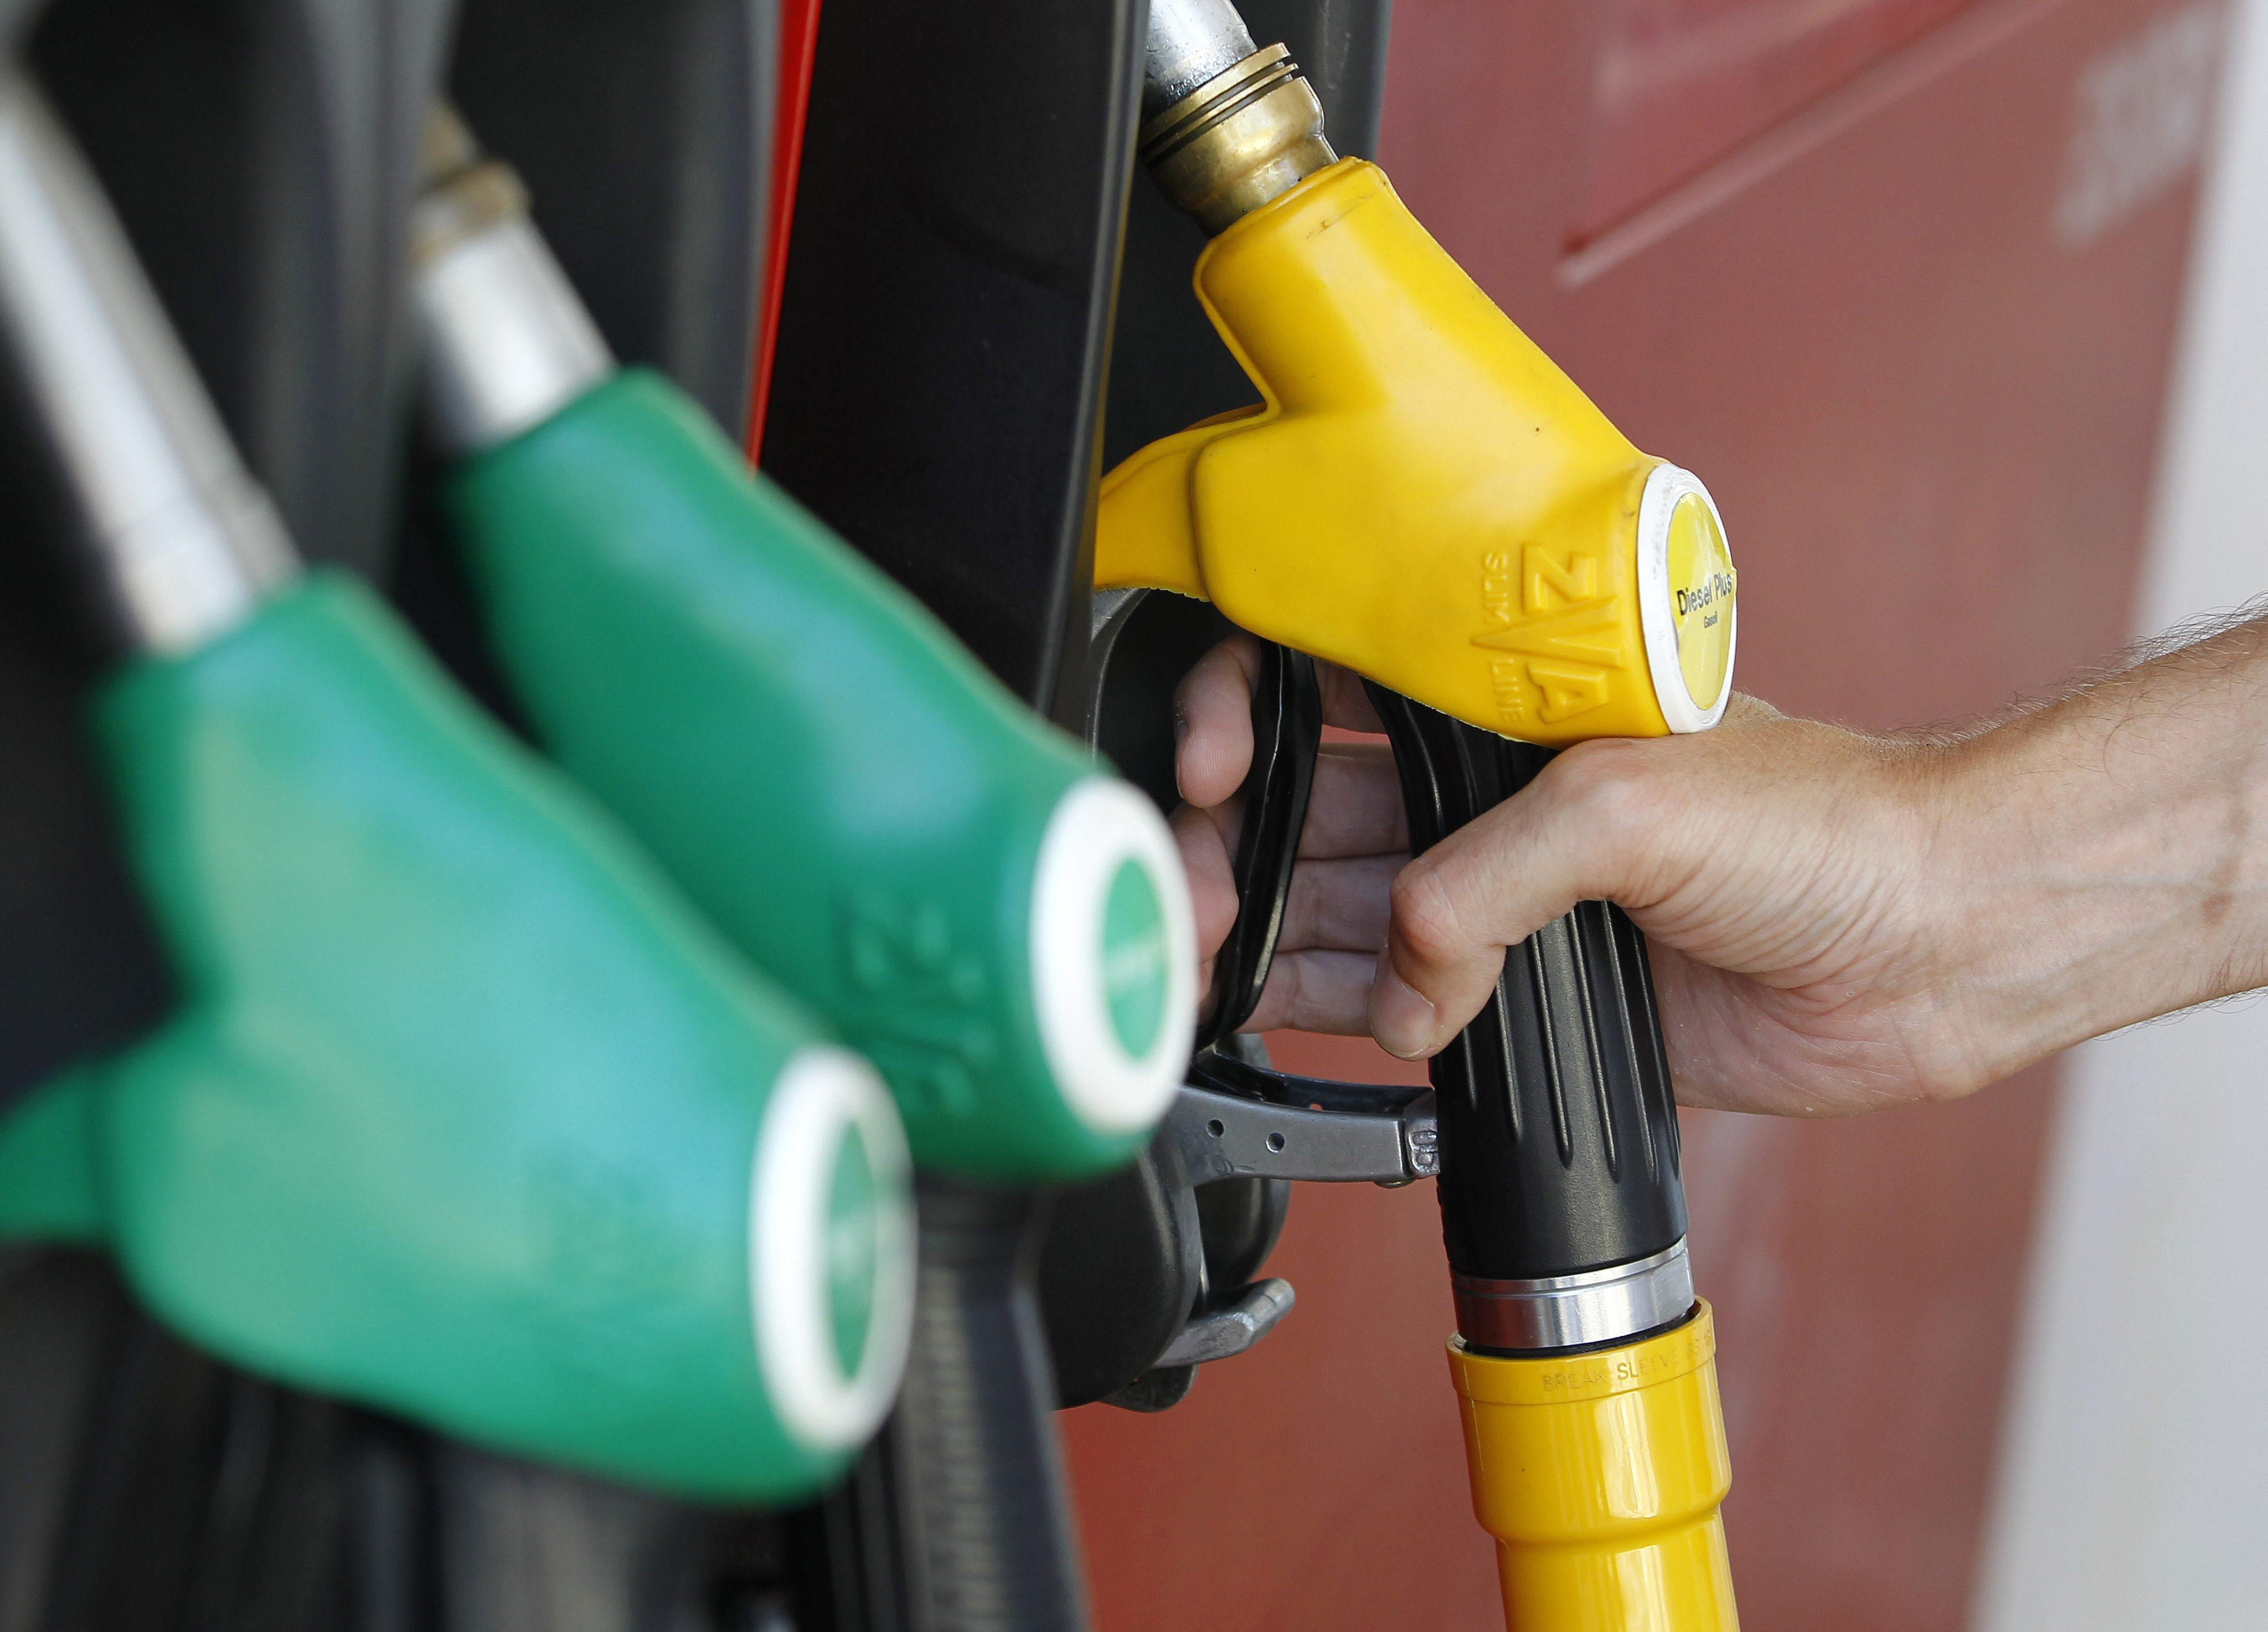 Gasoline and diesel oil prices in up to 6 cents of euro a liter for a three months period